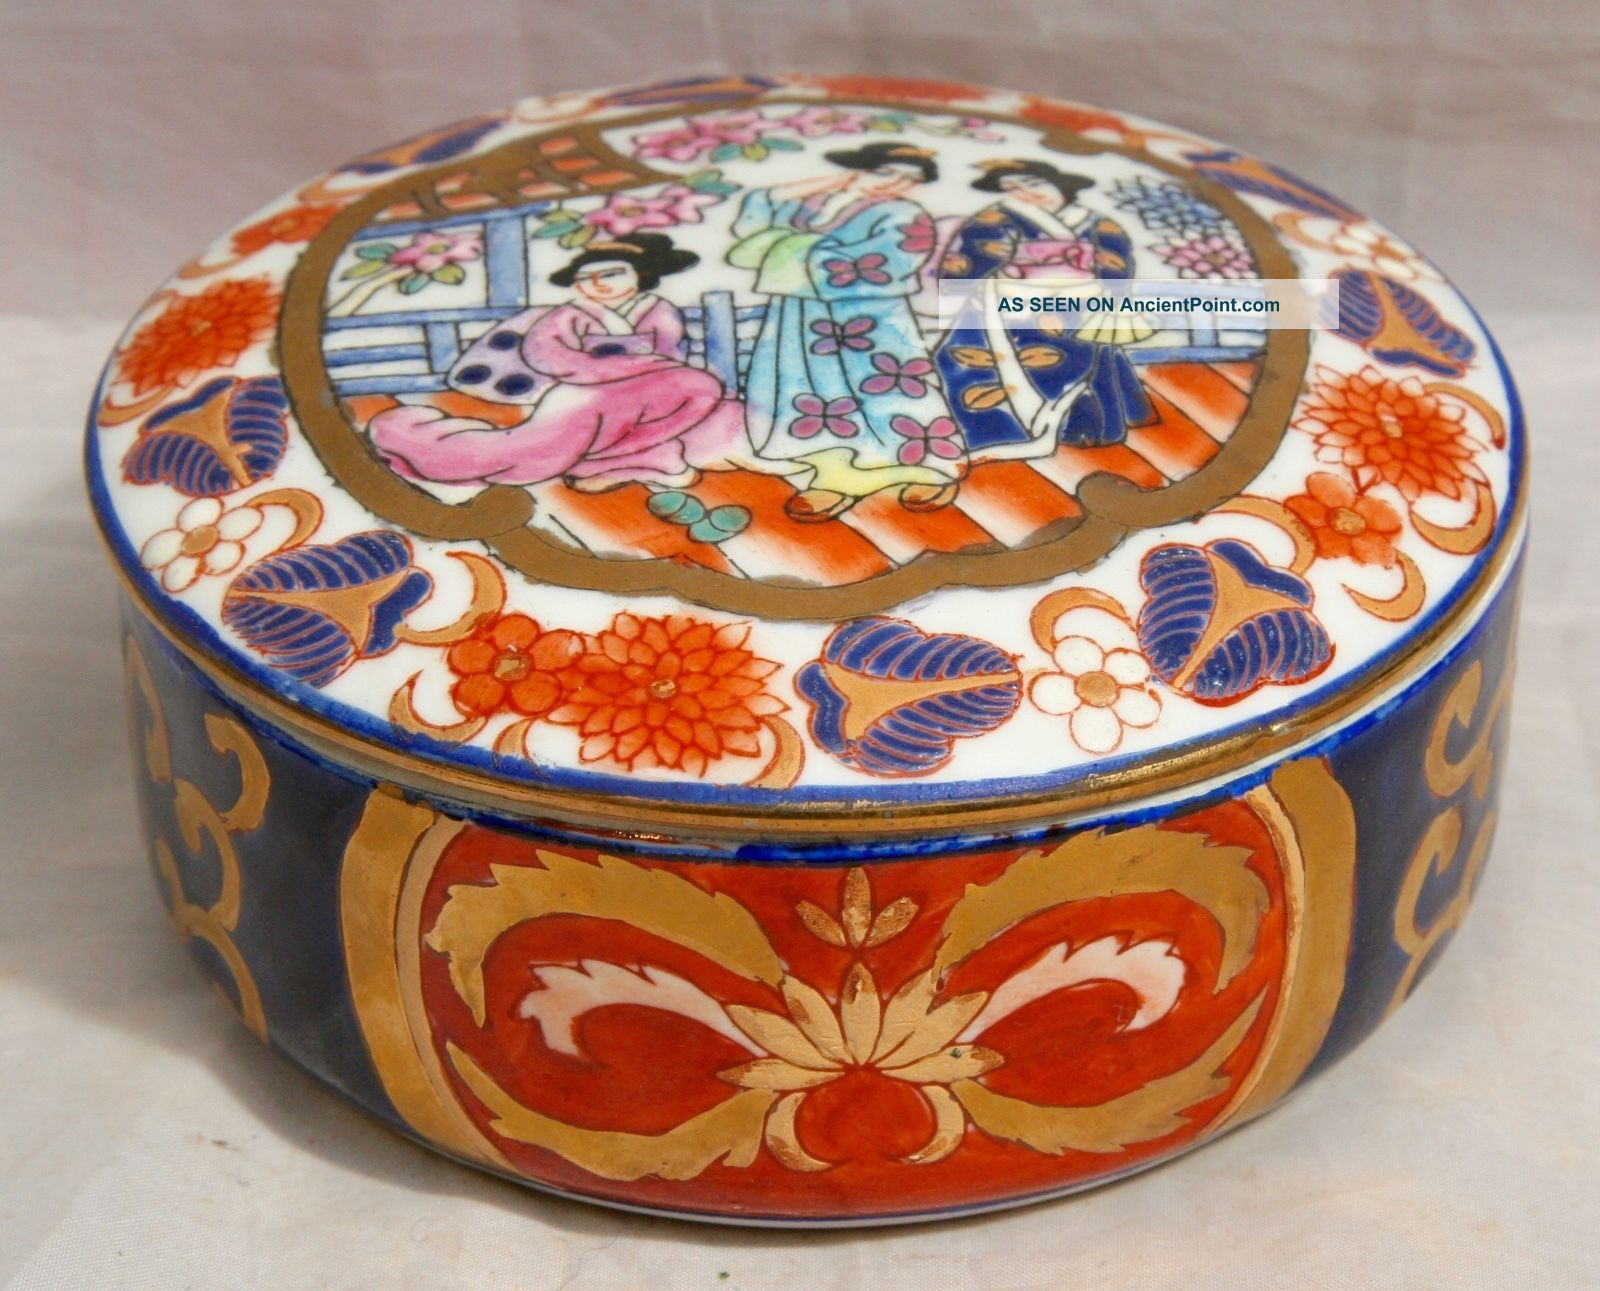 Antique Vintage Japanese Imari Porcelain Lidded Bowl With 3 Geisha Girls Signed Other Japanese Antiques photo